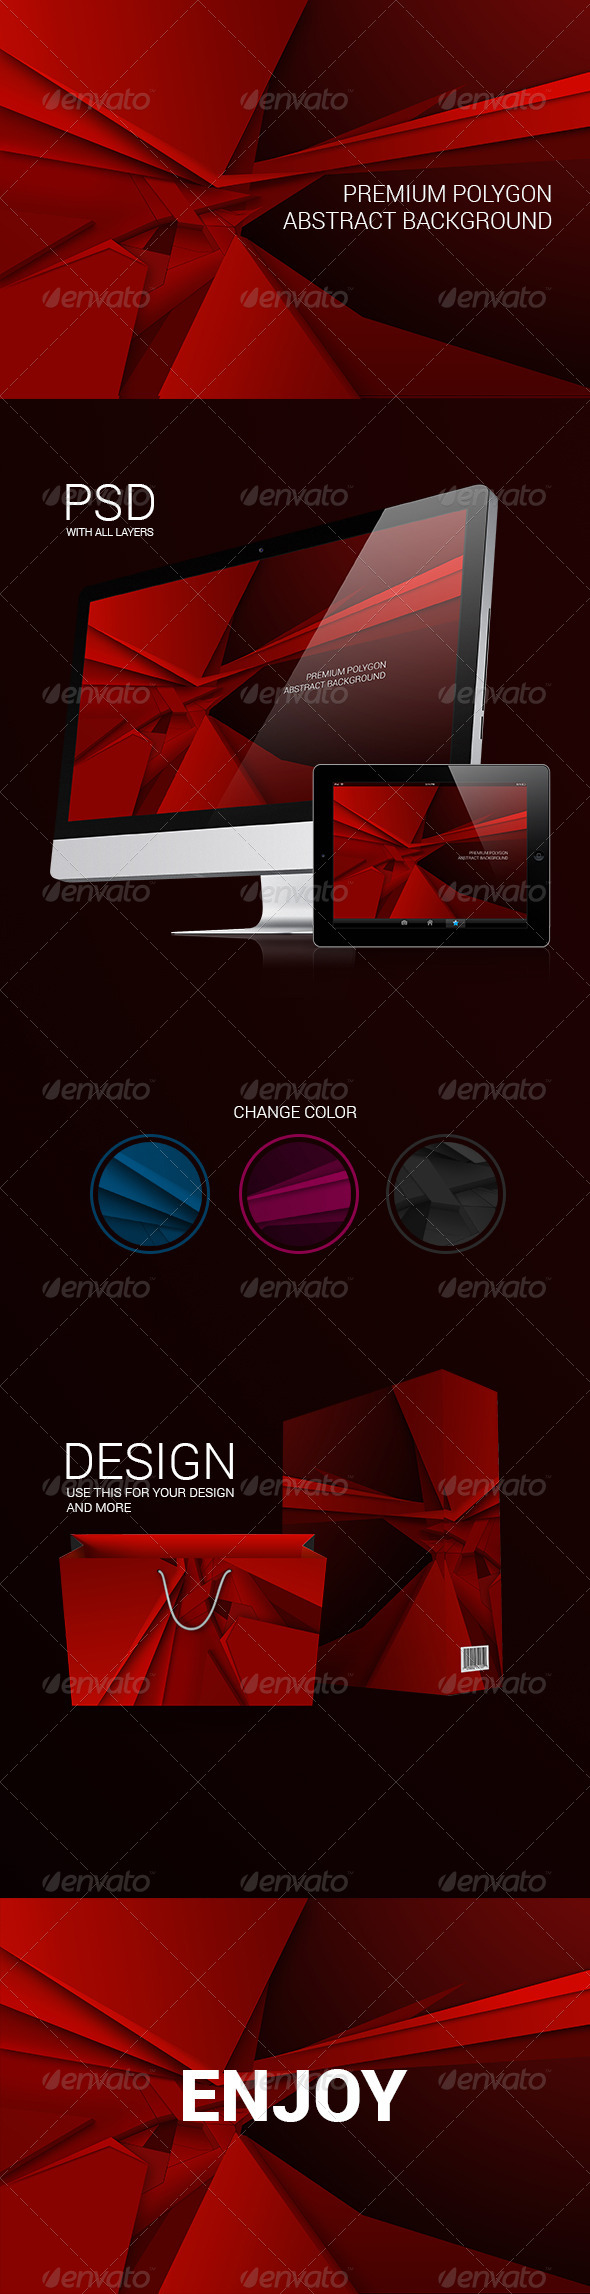 Premium Abstract Polygon Background - Backgrounds Graphics